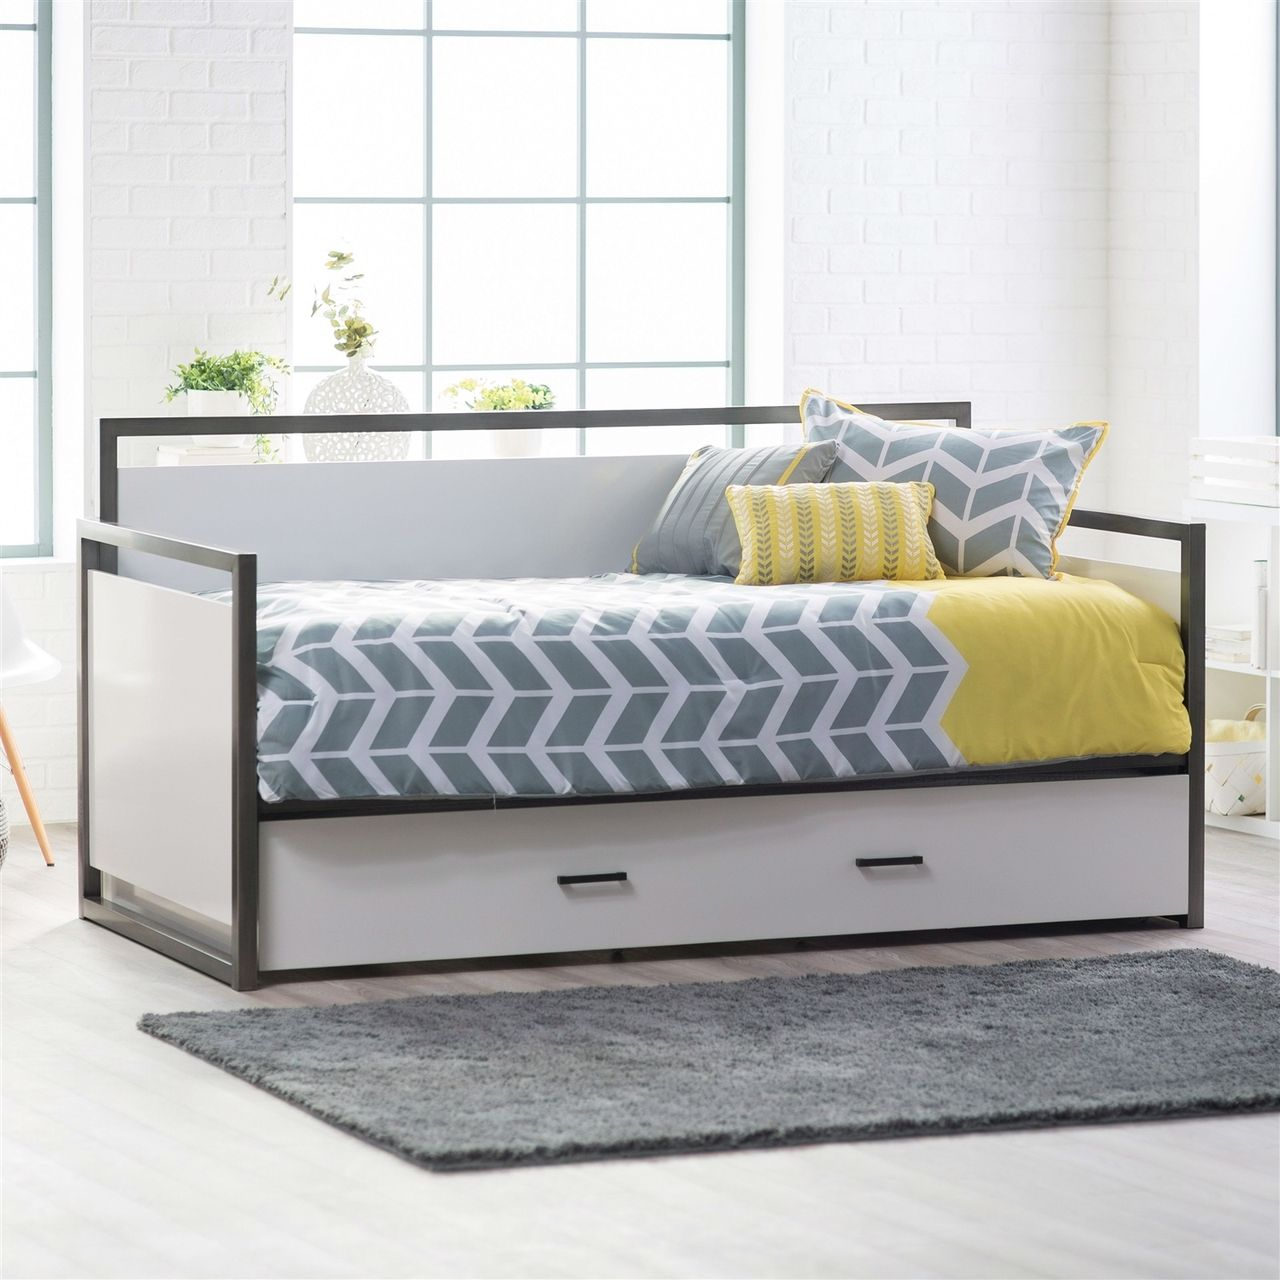 Twin Modern Metal Frame Daybed Pull Out Trundle Bed Glossy White